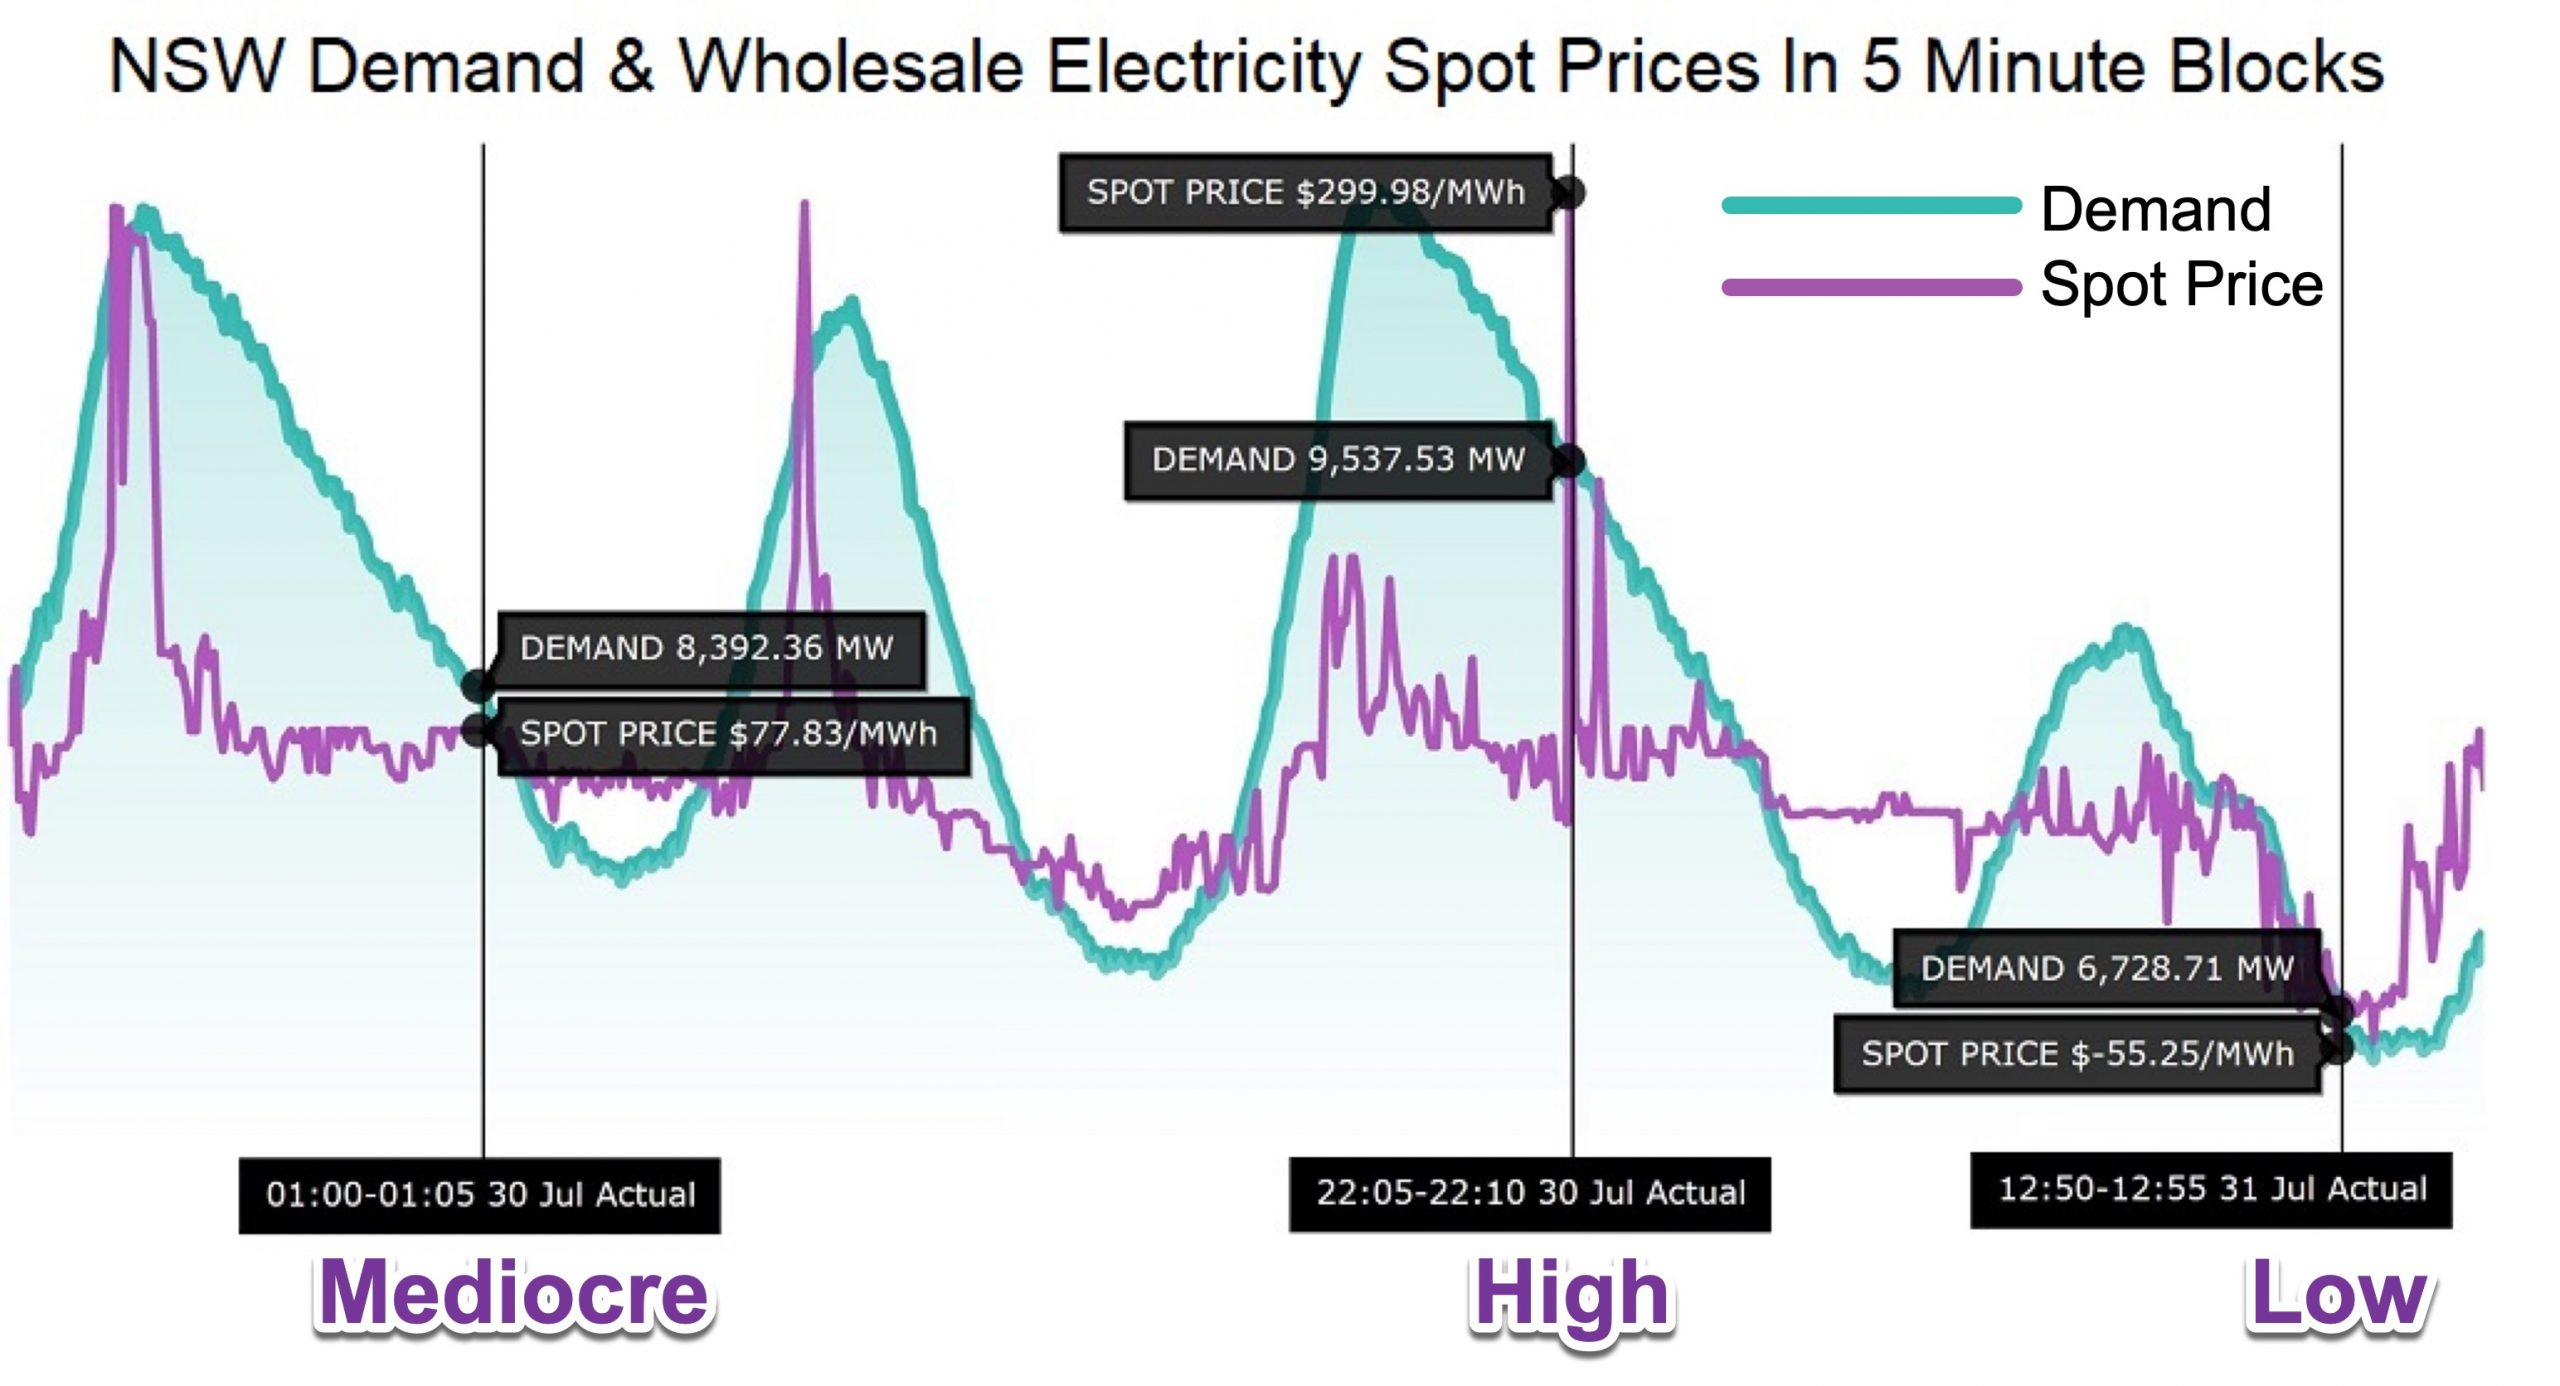 NSW demand and wholesale electricity spot prices - 5 minute blocks